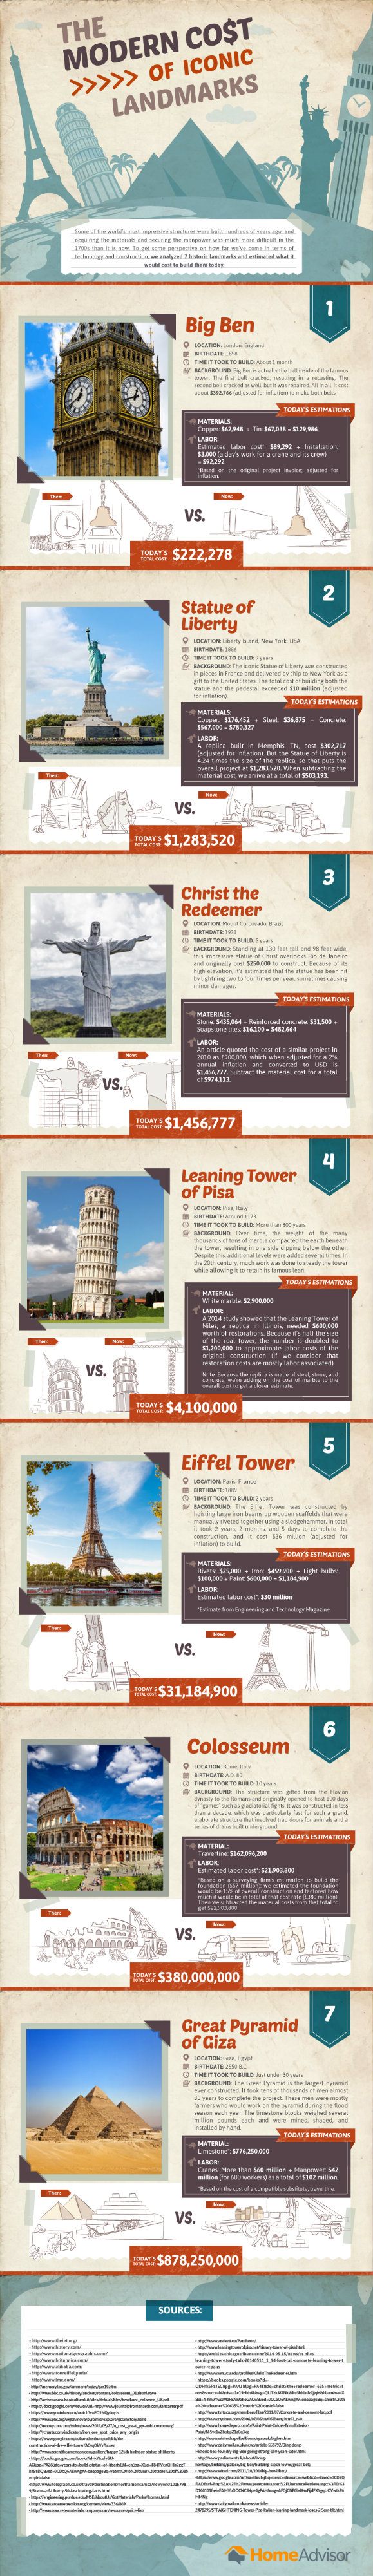 Modern Cost of Iconic Landmarks infographic